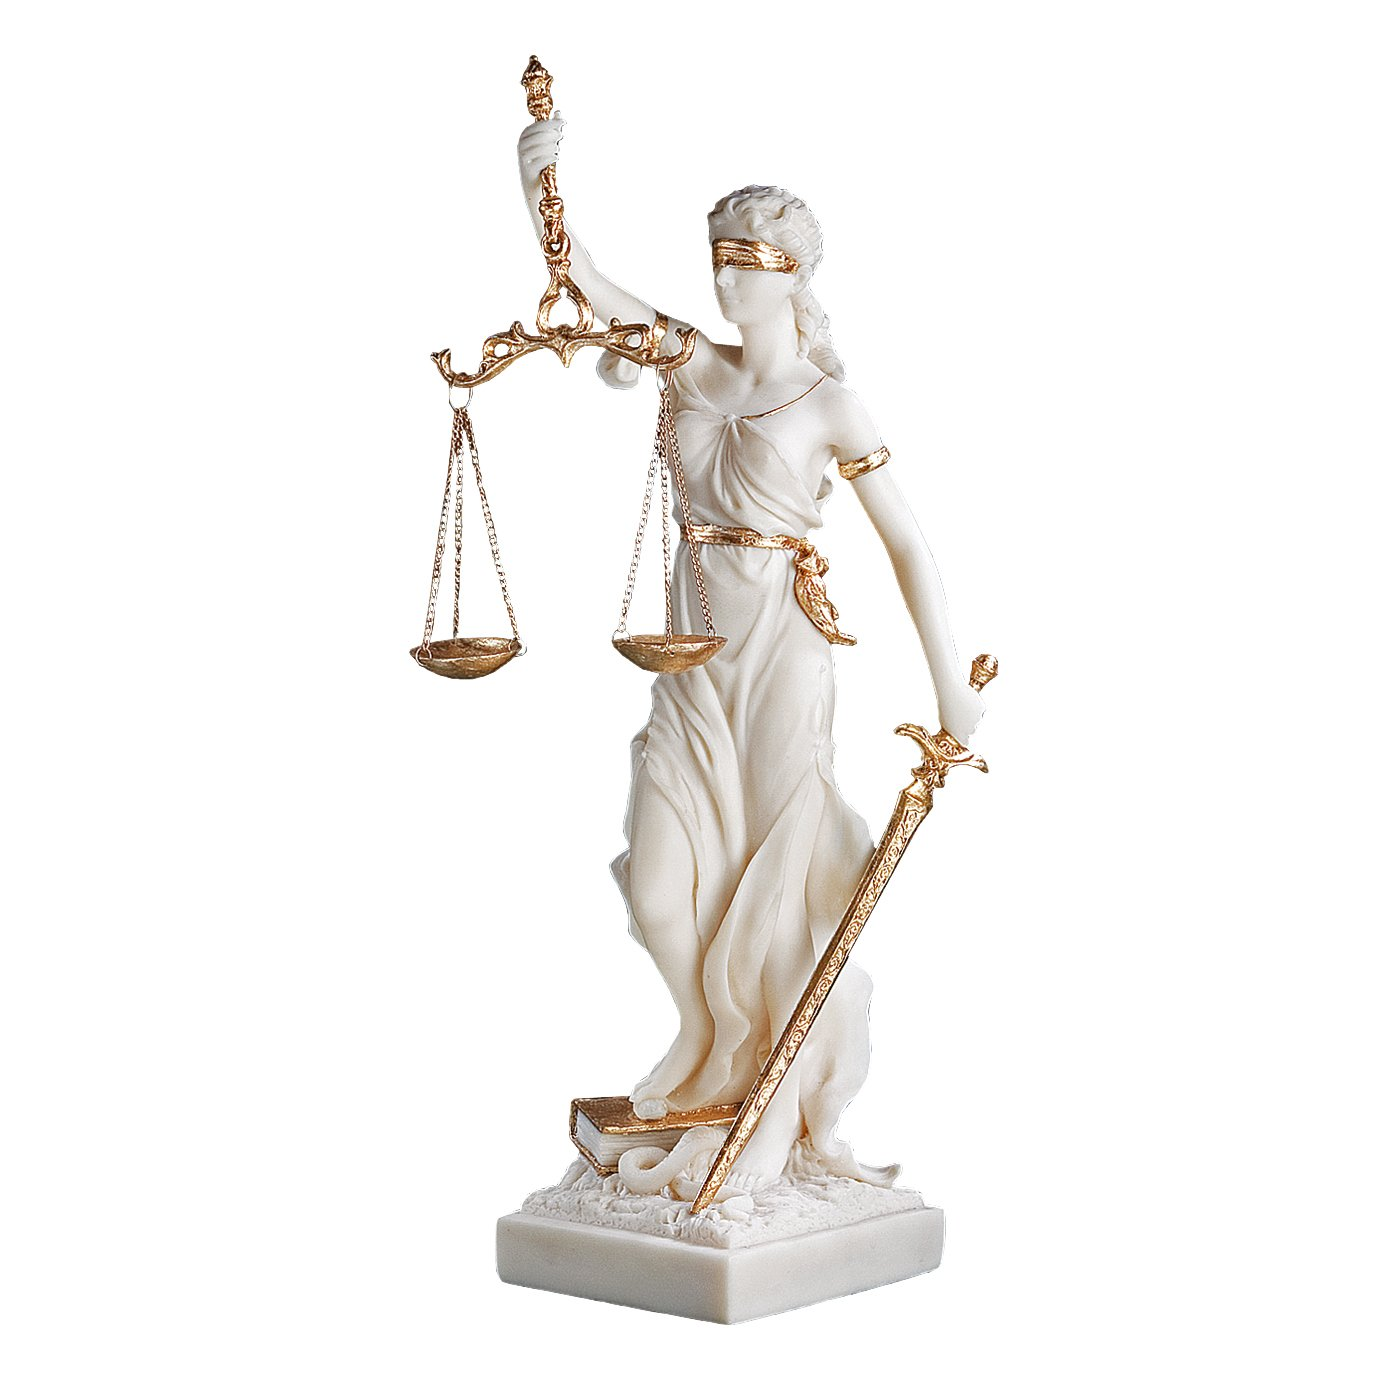 Design Toscano Themis Blind Lady of Justice Statue Lawyer Gift, 13 Inch, Bonded Marble Polyresin, White by Design Toscano